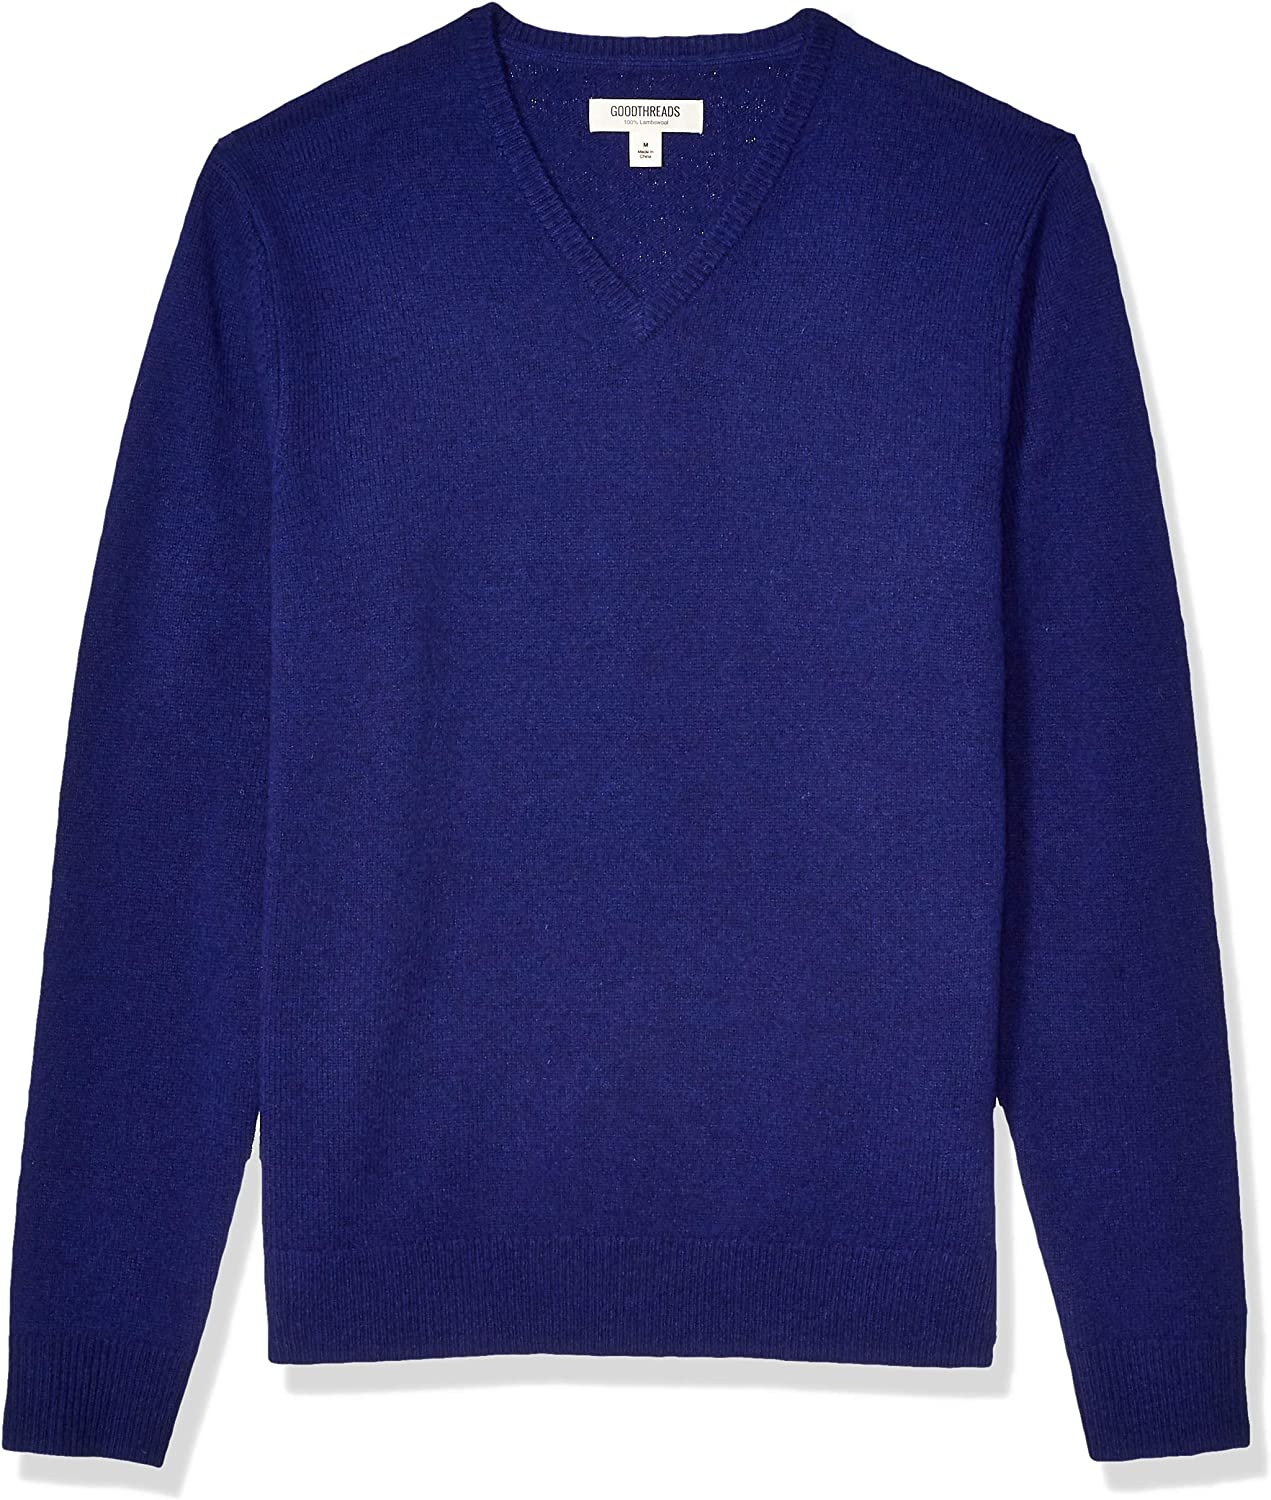 Brand Goodthreads Mens Lambswool Crewneck Sweater